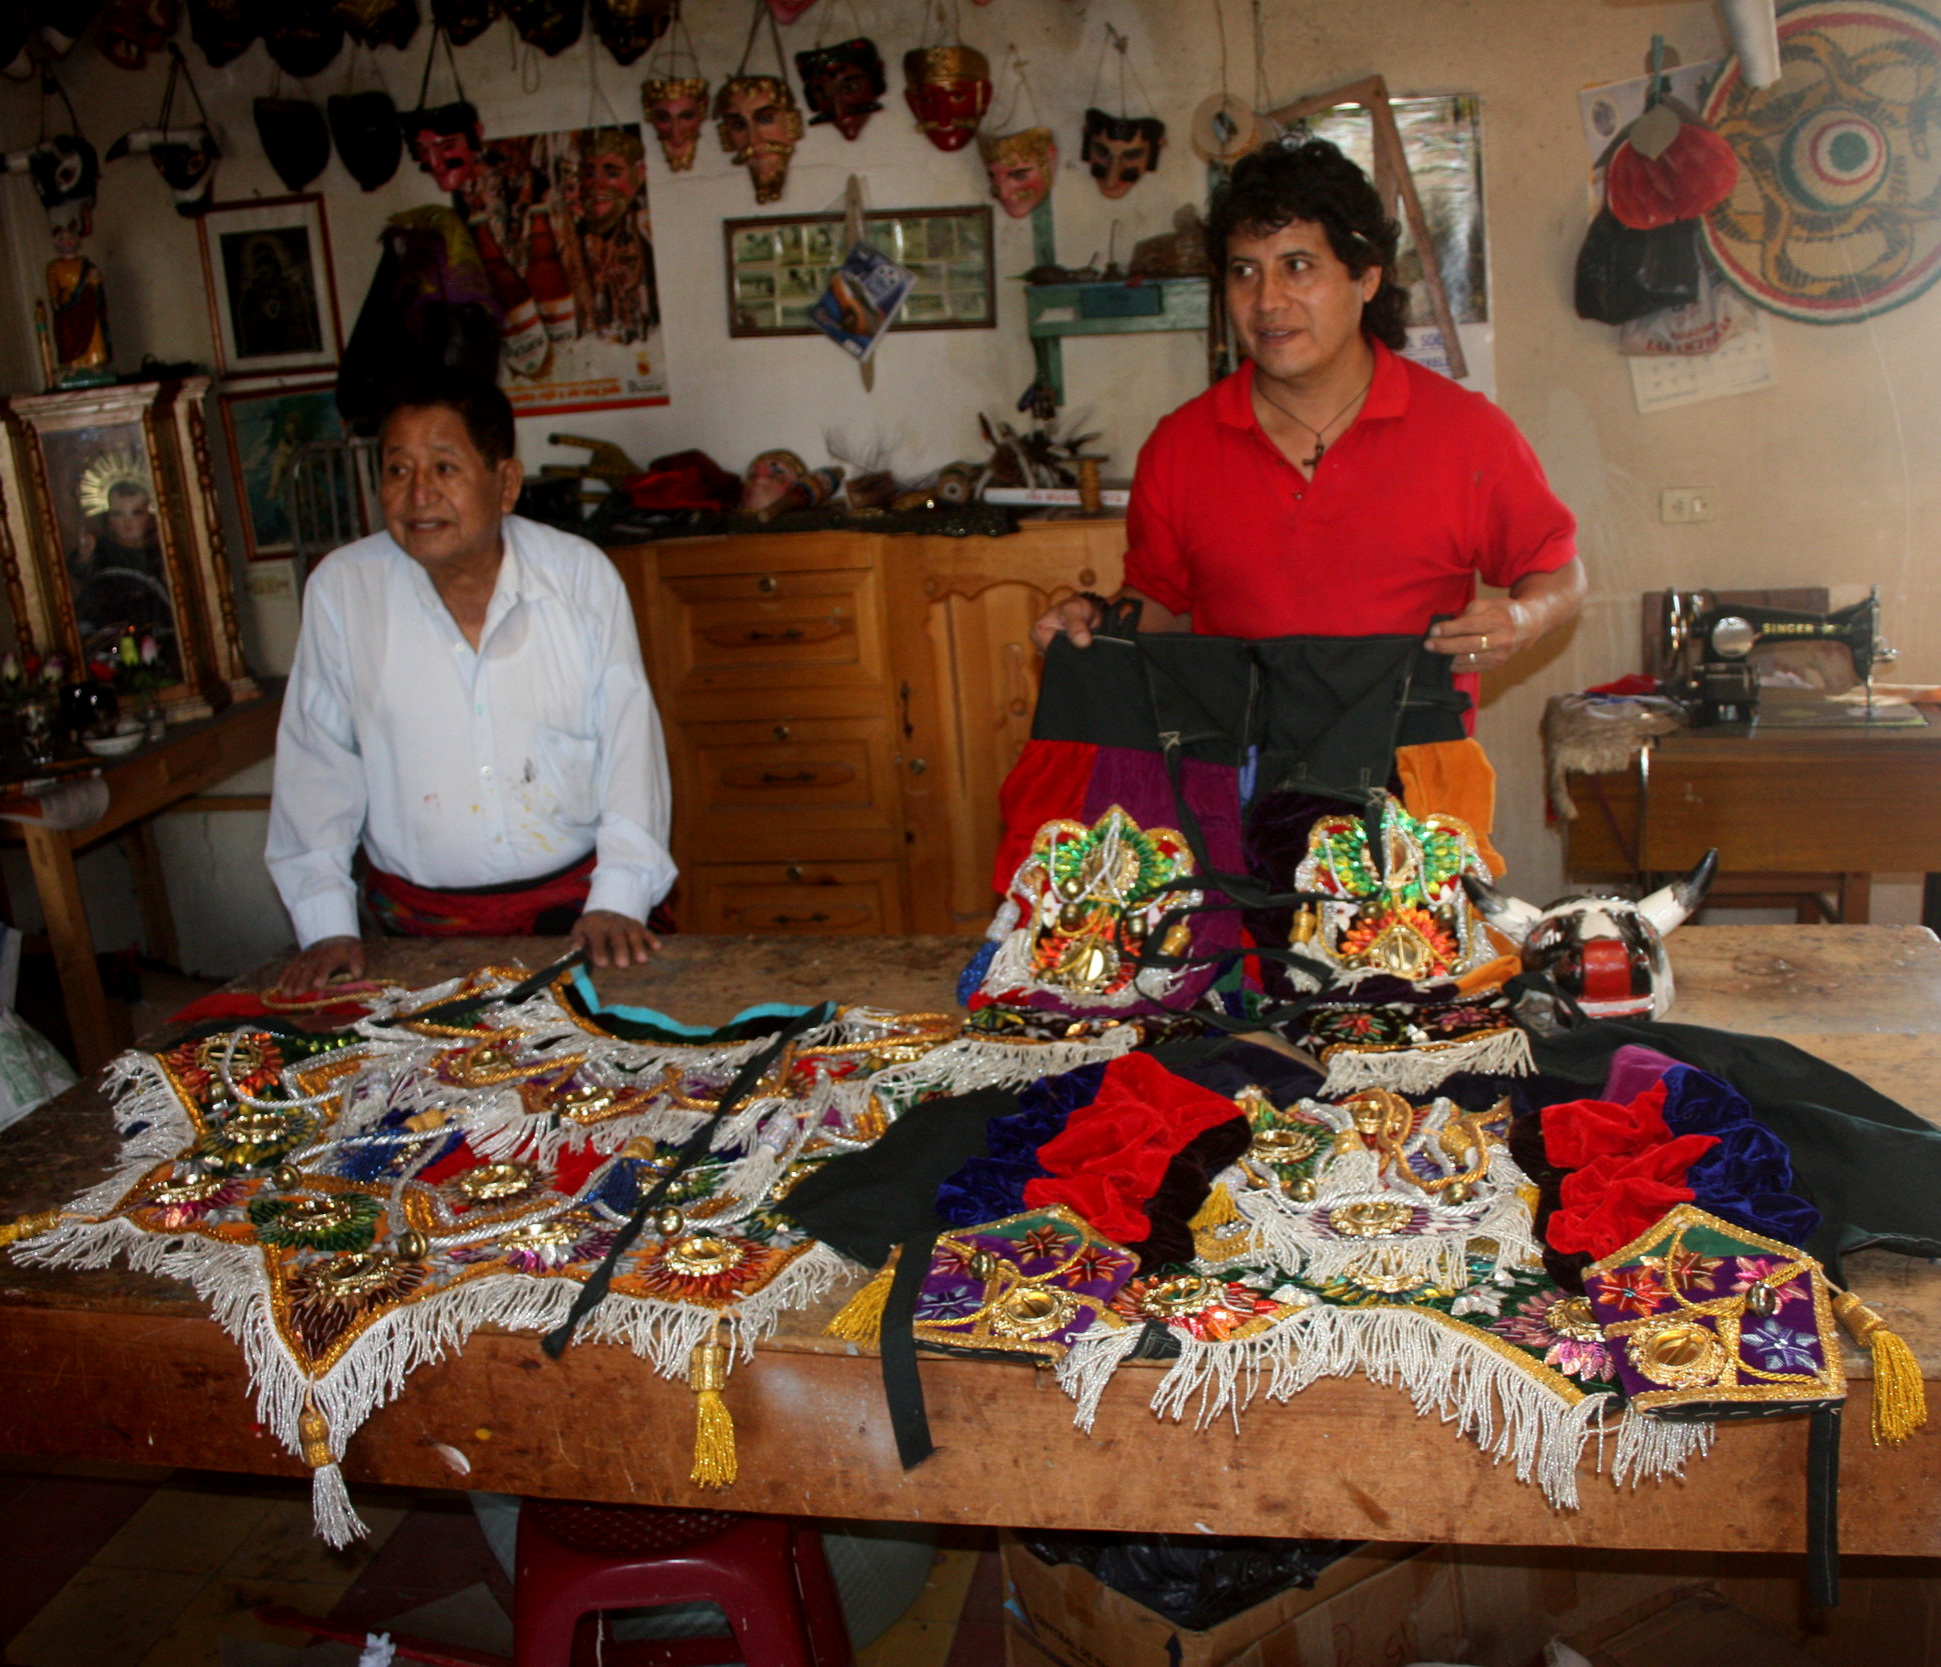 Morería  Santo Tomás, Chichicastenango 2011. Owner Don Ignacio Calel on the left and current owner-manager Angel Ignacio Ventura on the right. They are displaying a  Baile de los Toritos  costume. Note rental masks and Mexican  sombrero  hanging in the background.